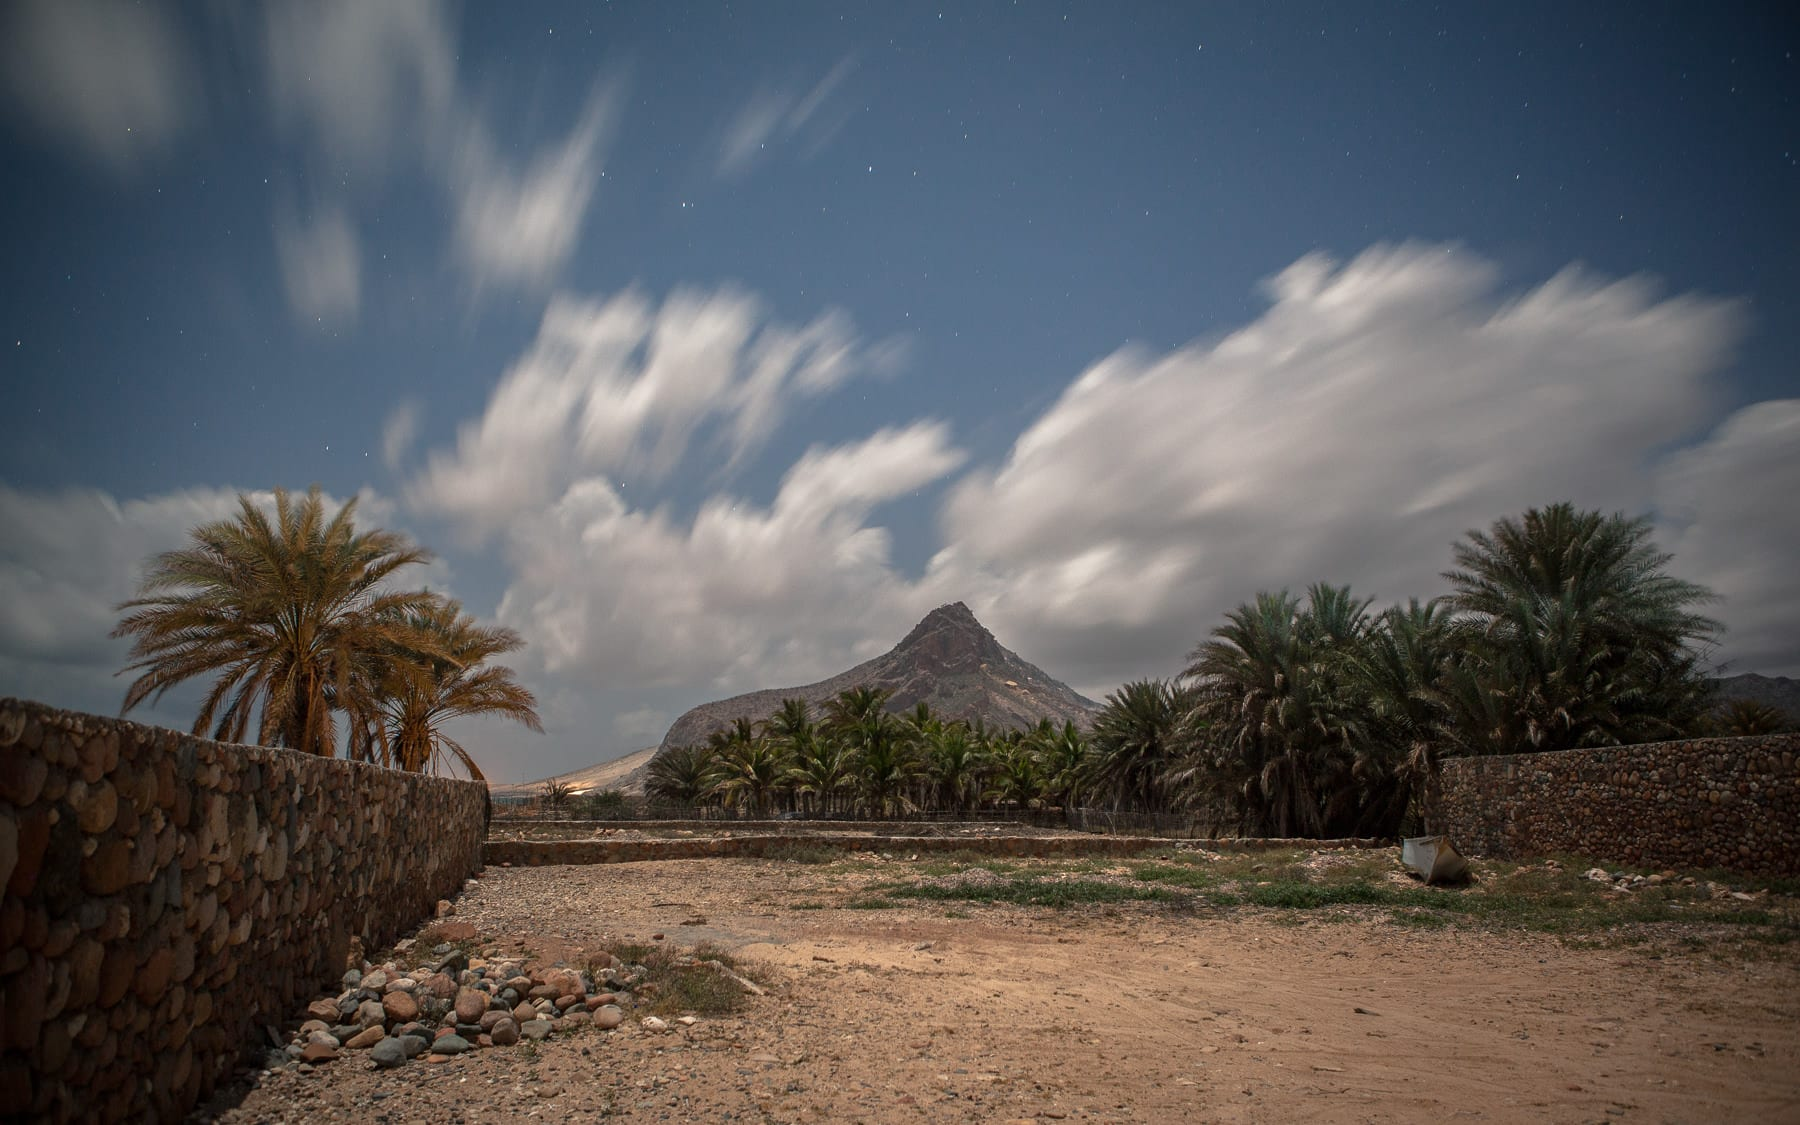 socotra-yemen-travels-s2-images-001-6